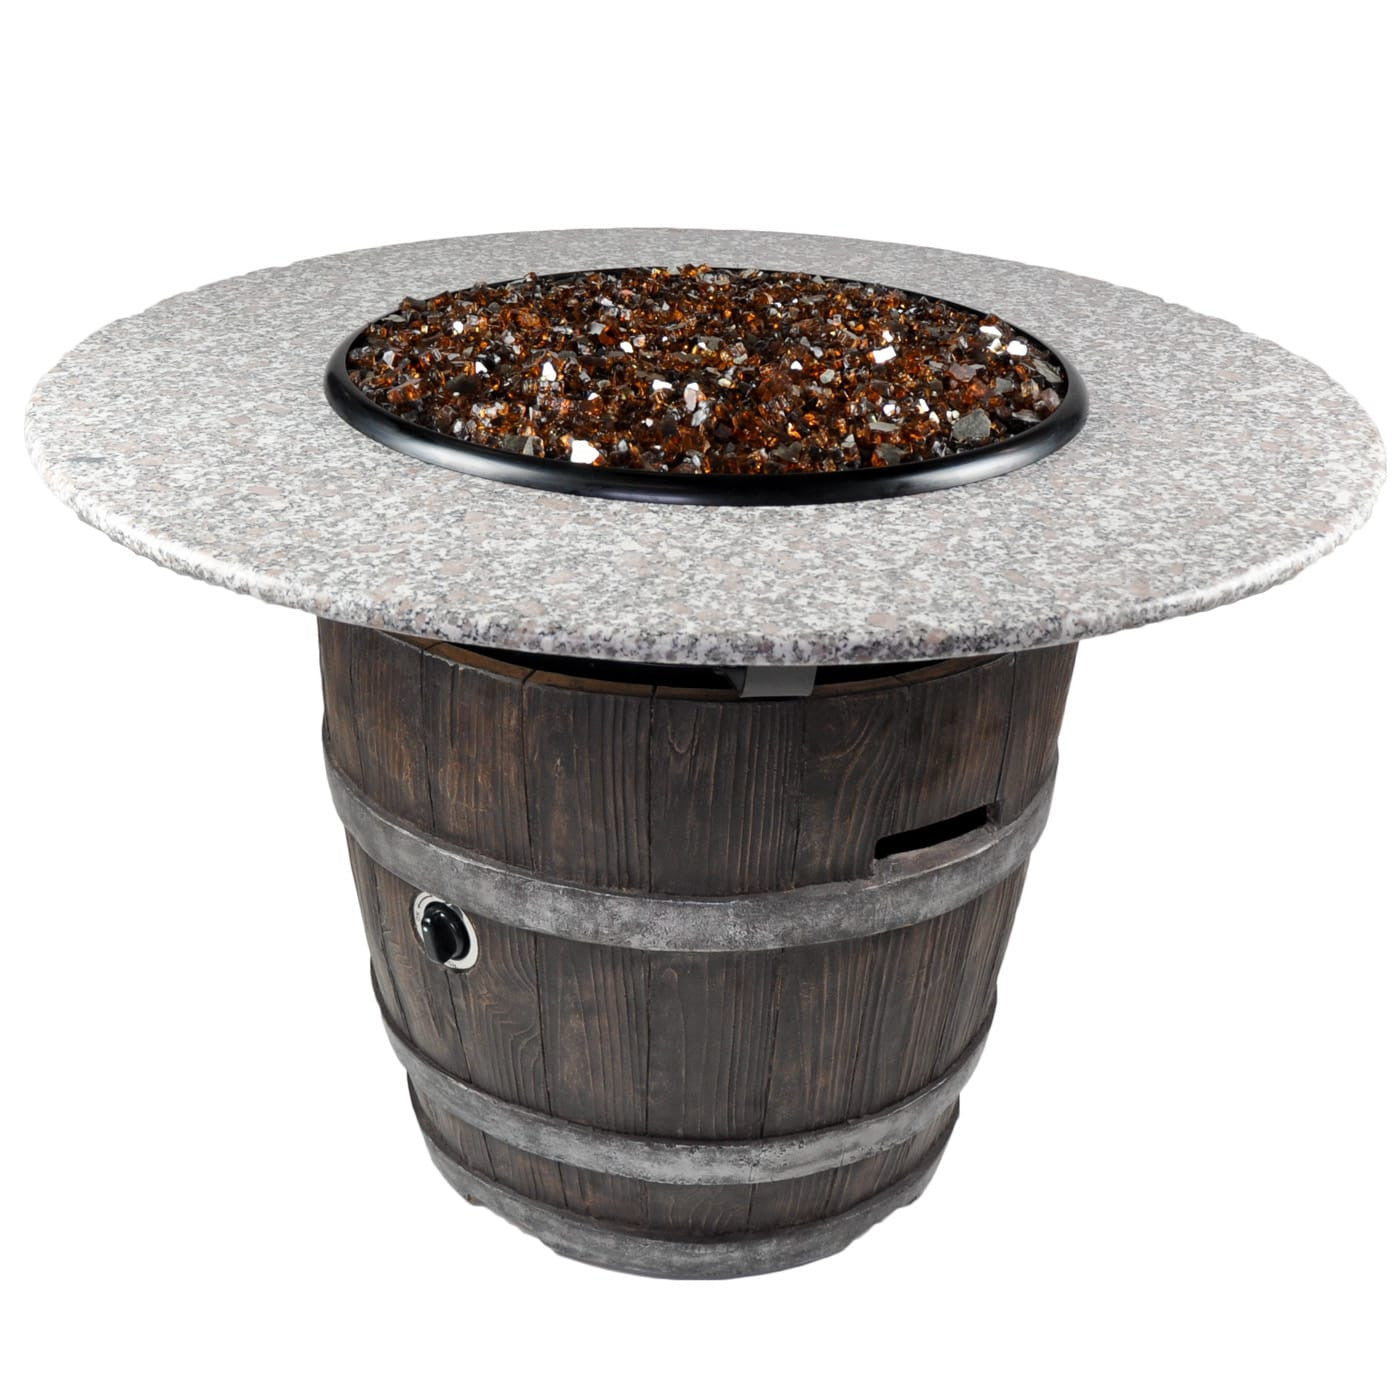 Buy Round Outdoor Propane Fire Pits Tretco Wine Barrel III!